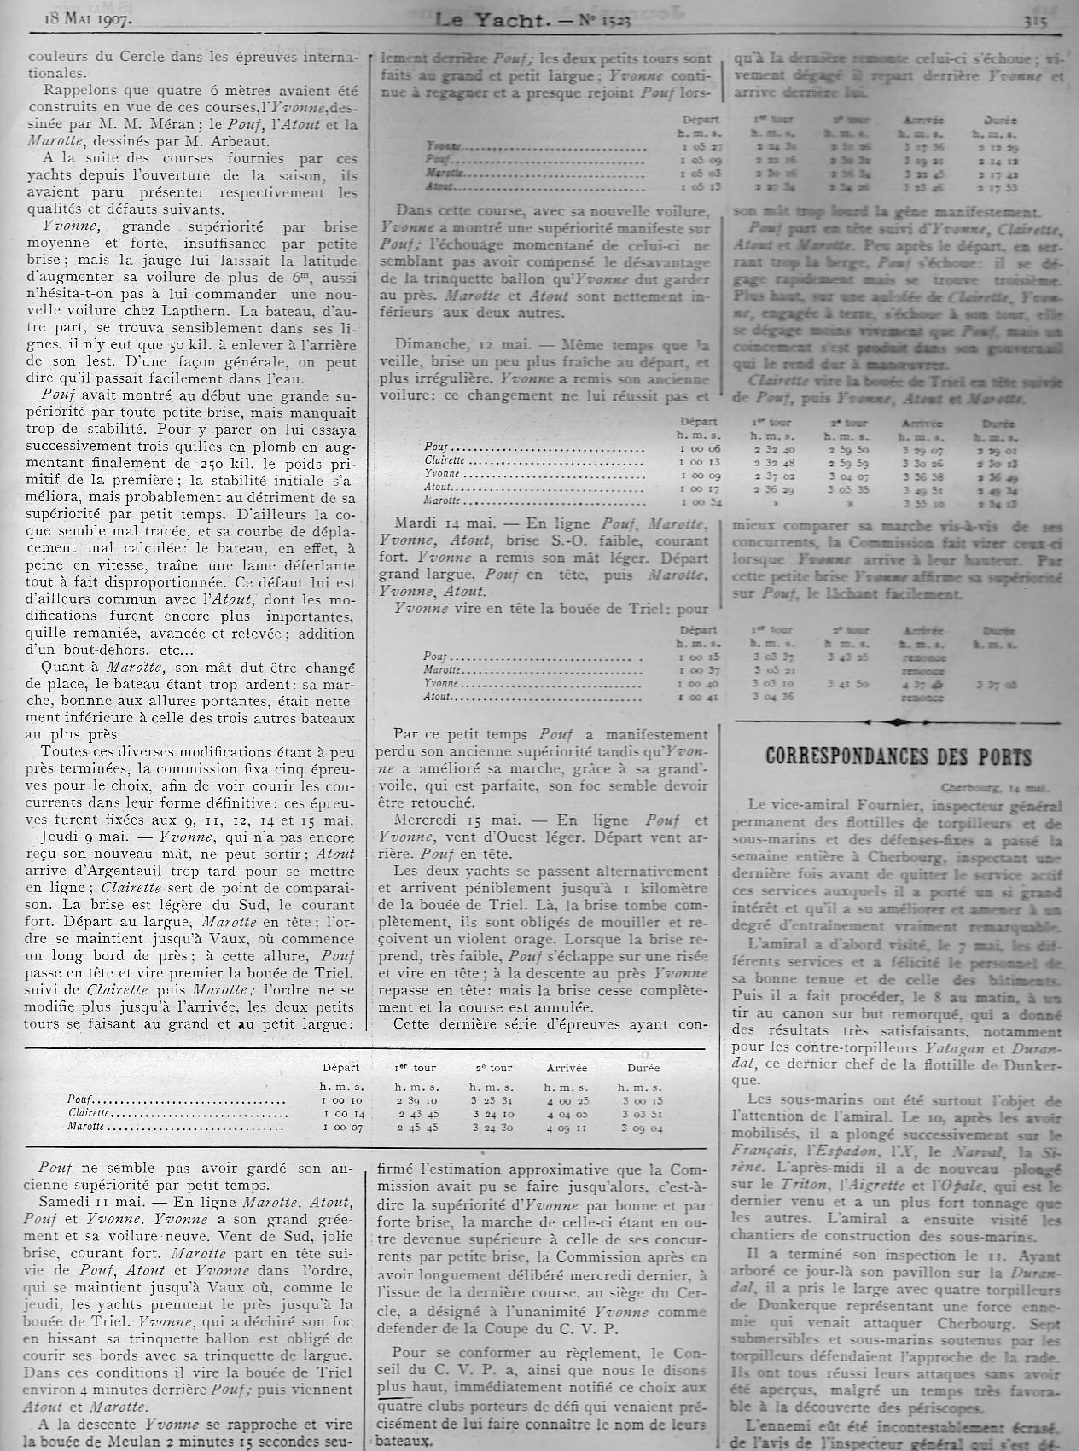 May 1907 Le Yacht